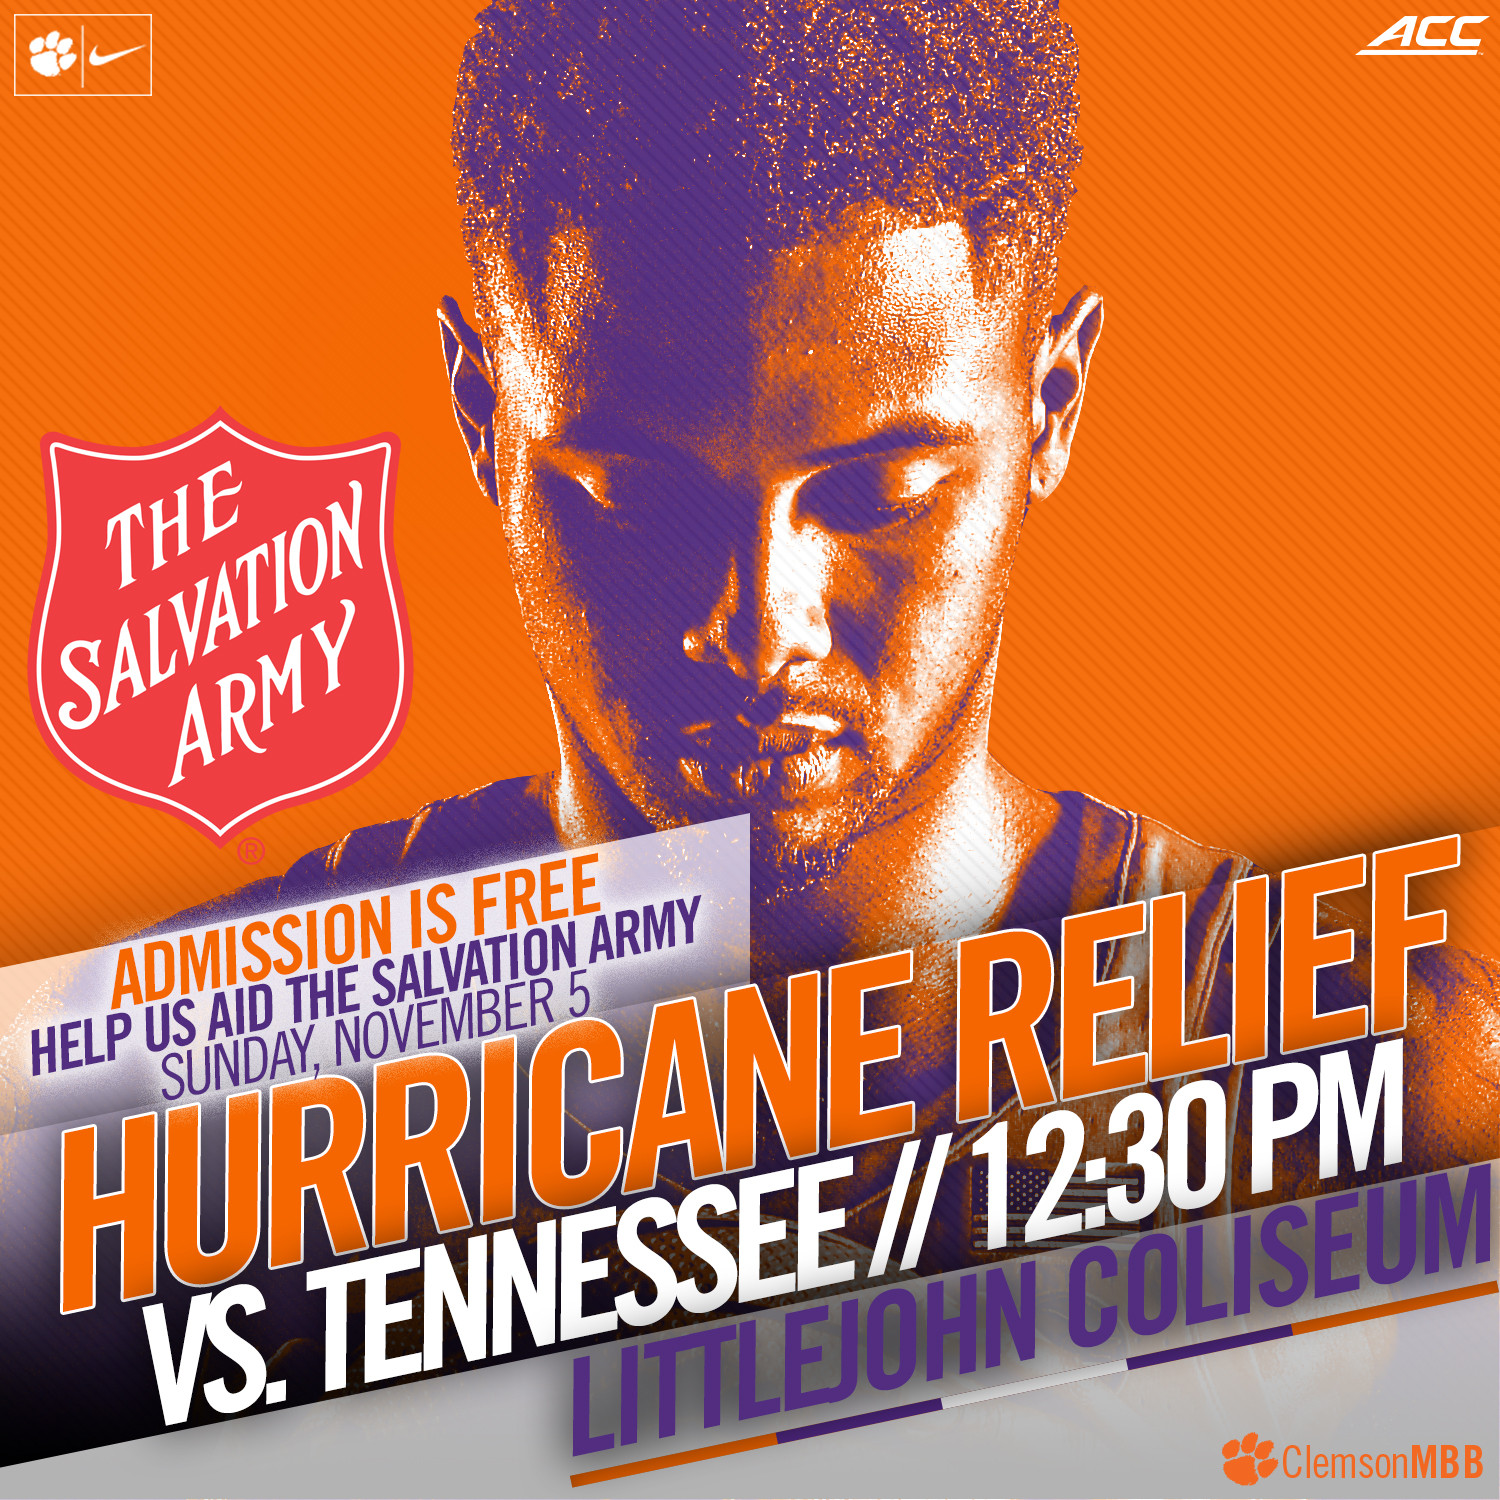 MBB to Host Tennessee in Charity Exhibition